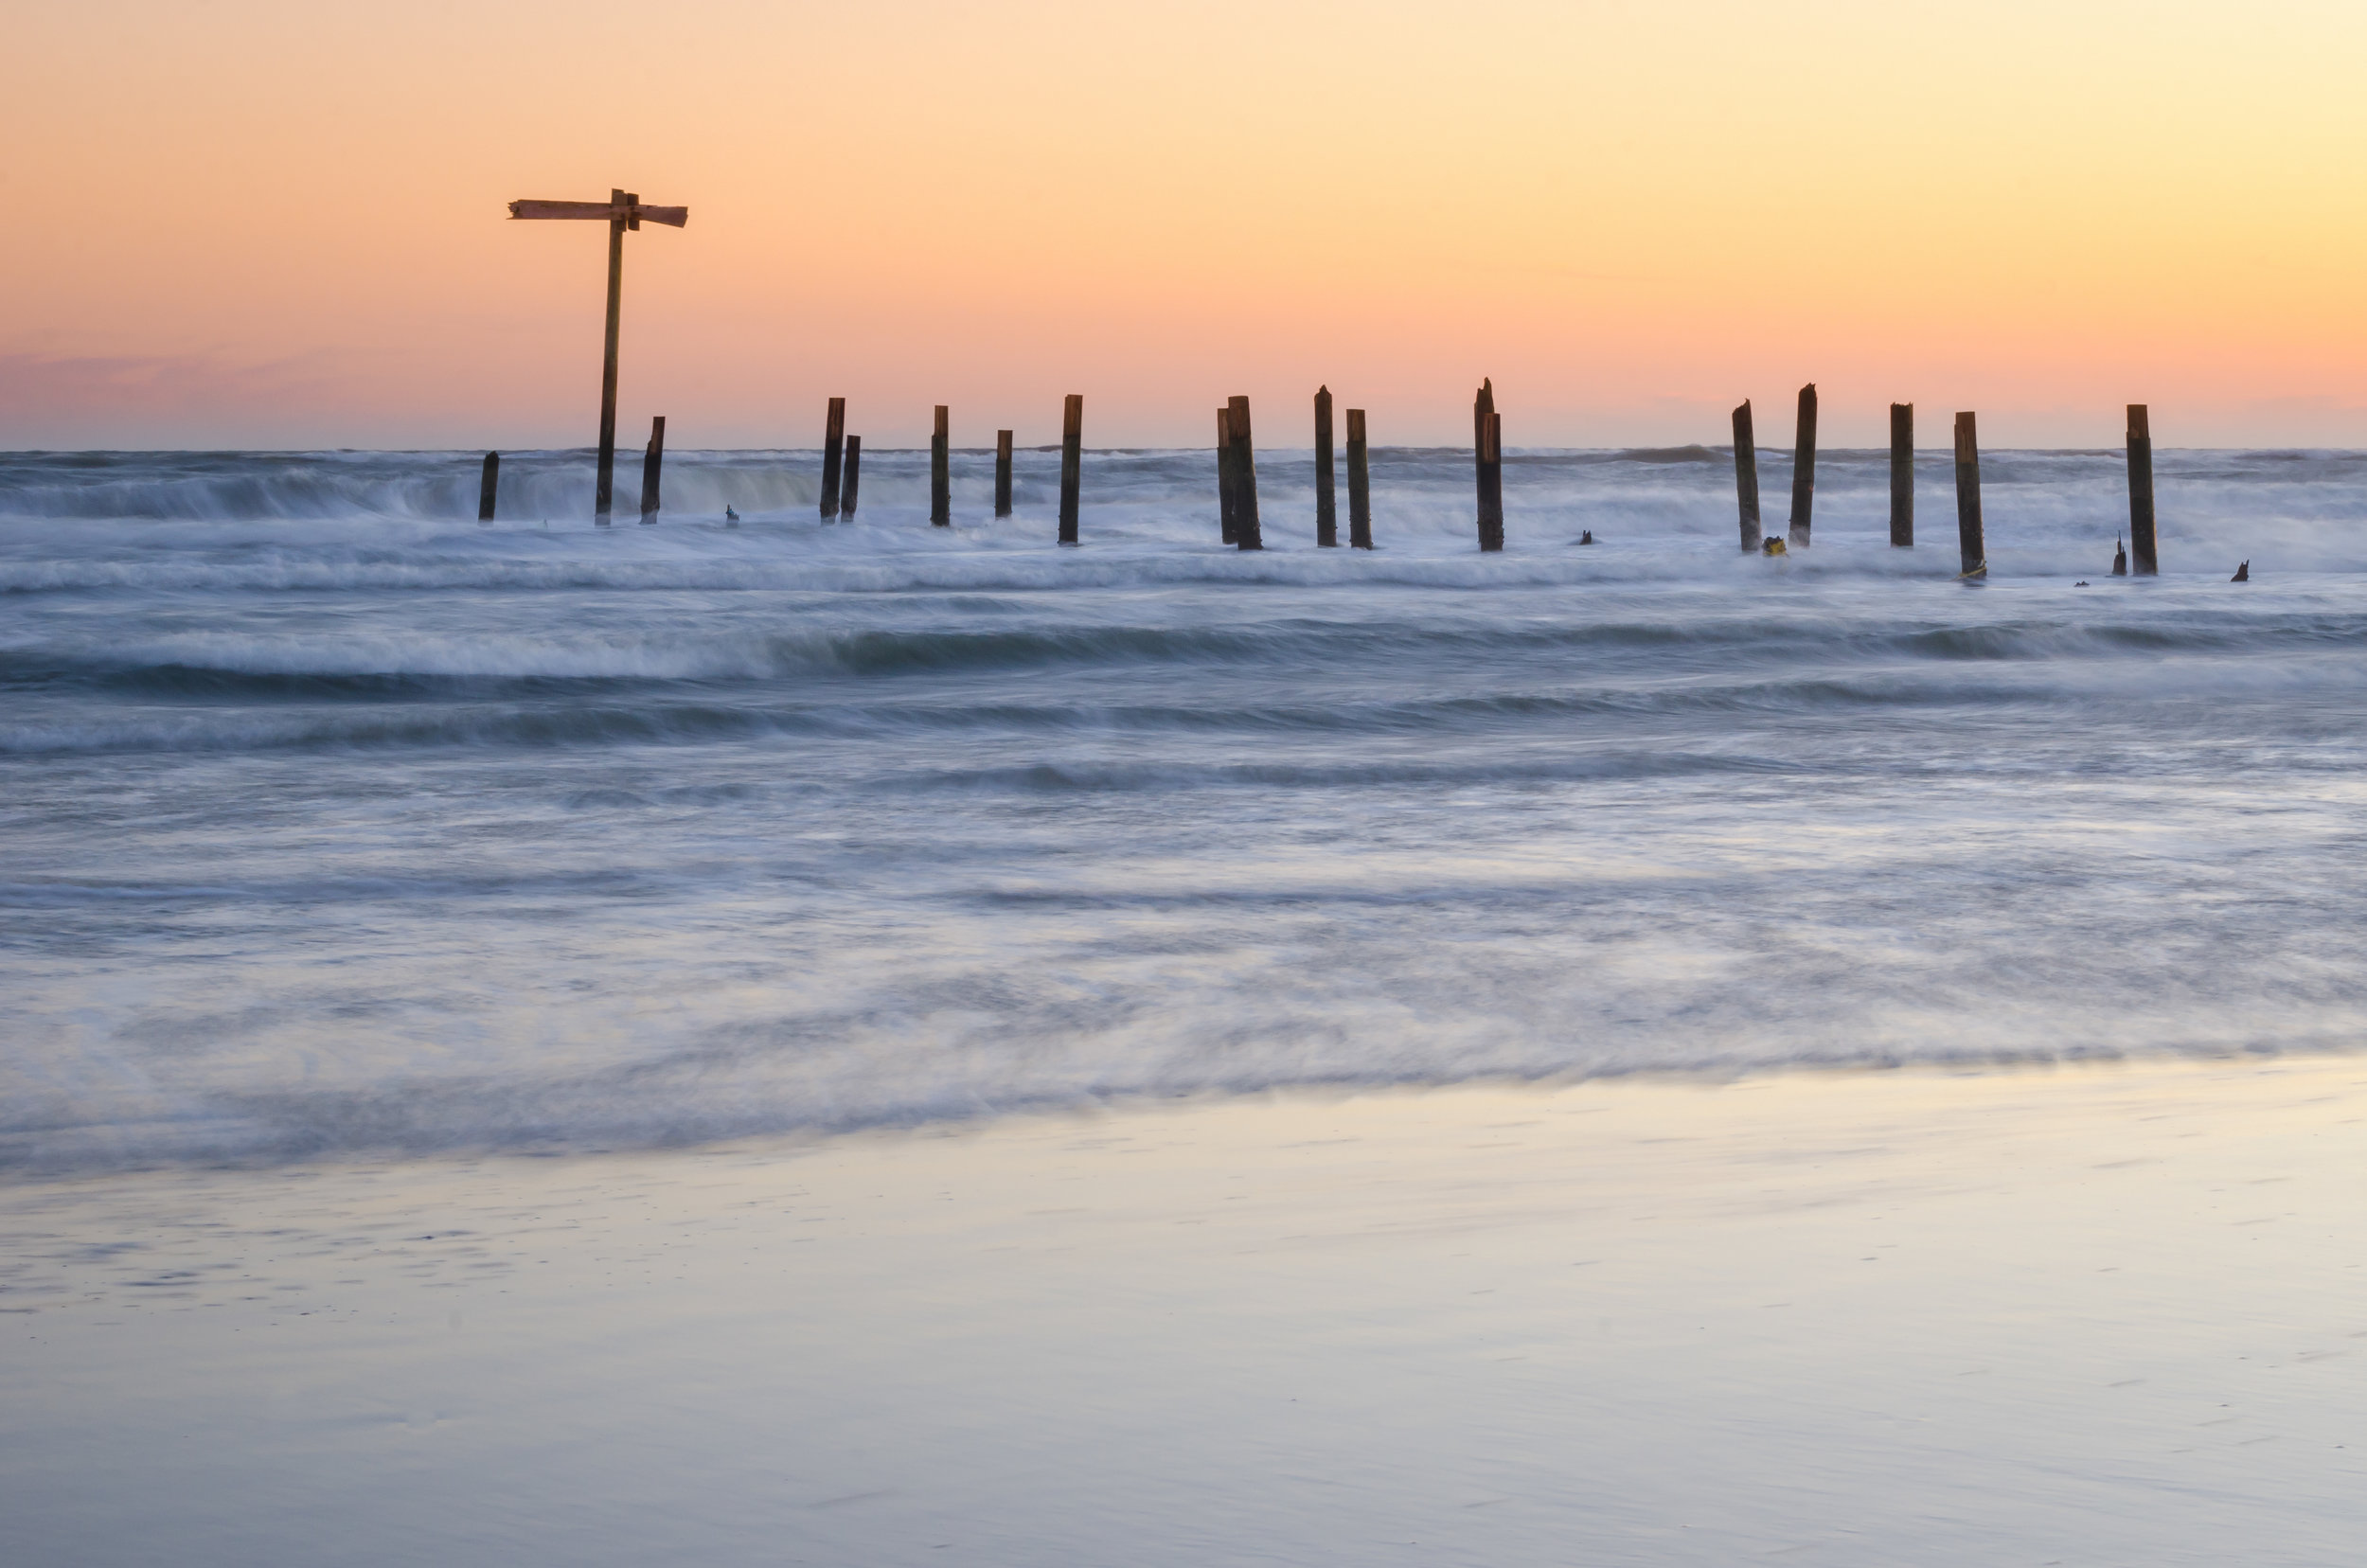 Frisco Pier-Frisco-pier-Outer Banks-OBX-North Carolina-sunset.jpg